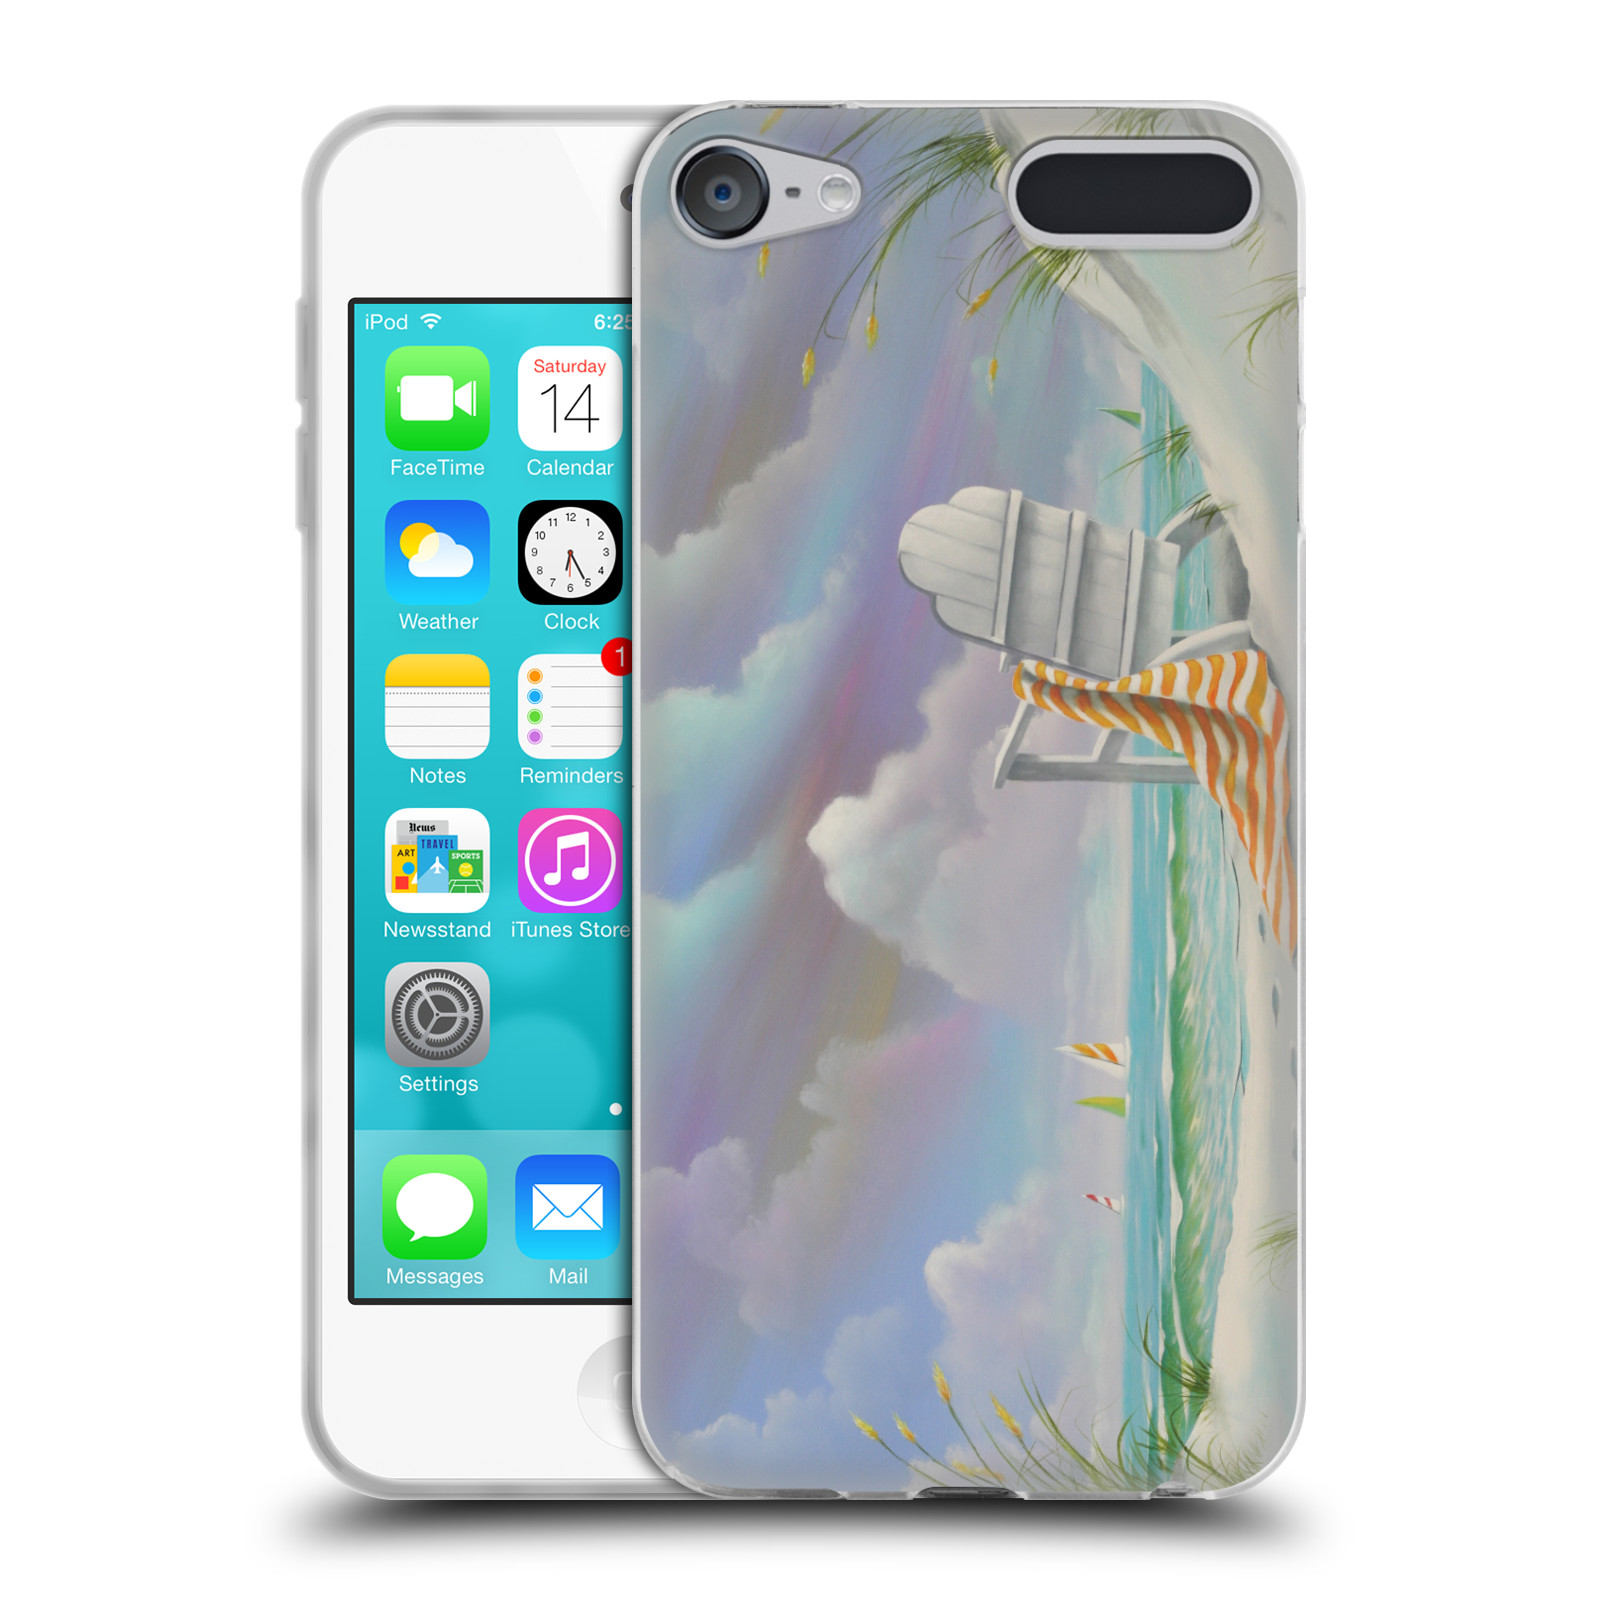 OFFICIEL-GENO-PEOPLES-ART-JOUR-FERIE-ETUI-COQUE-EN-GEL-POUR-APPLE-iPOD-TOUCH-MP3